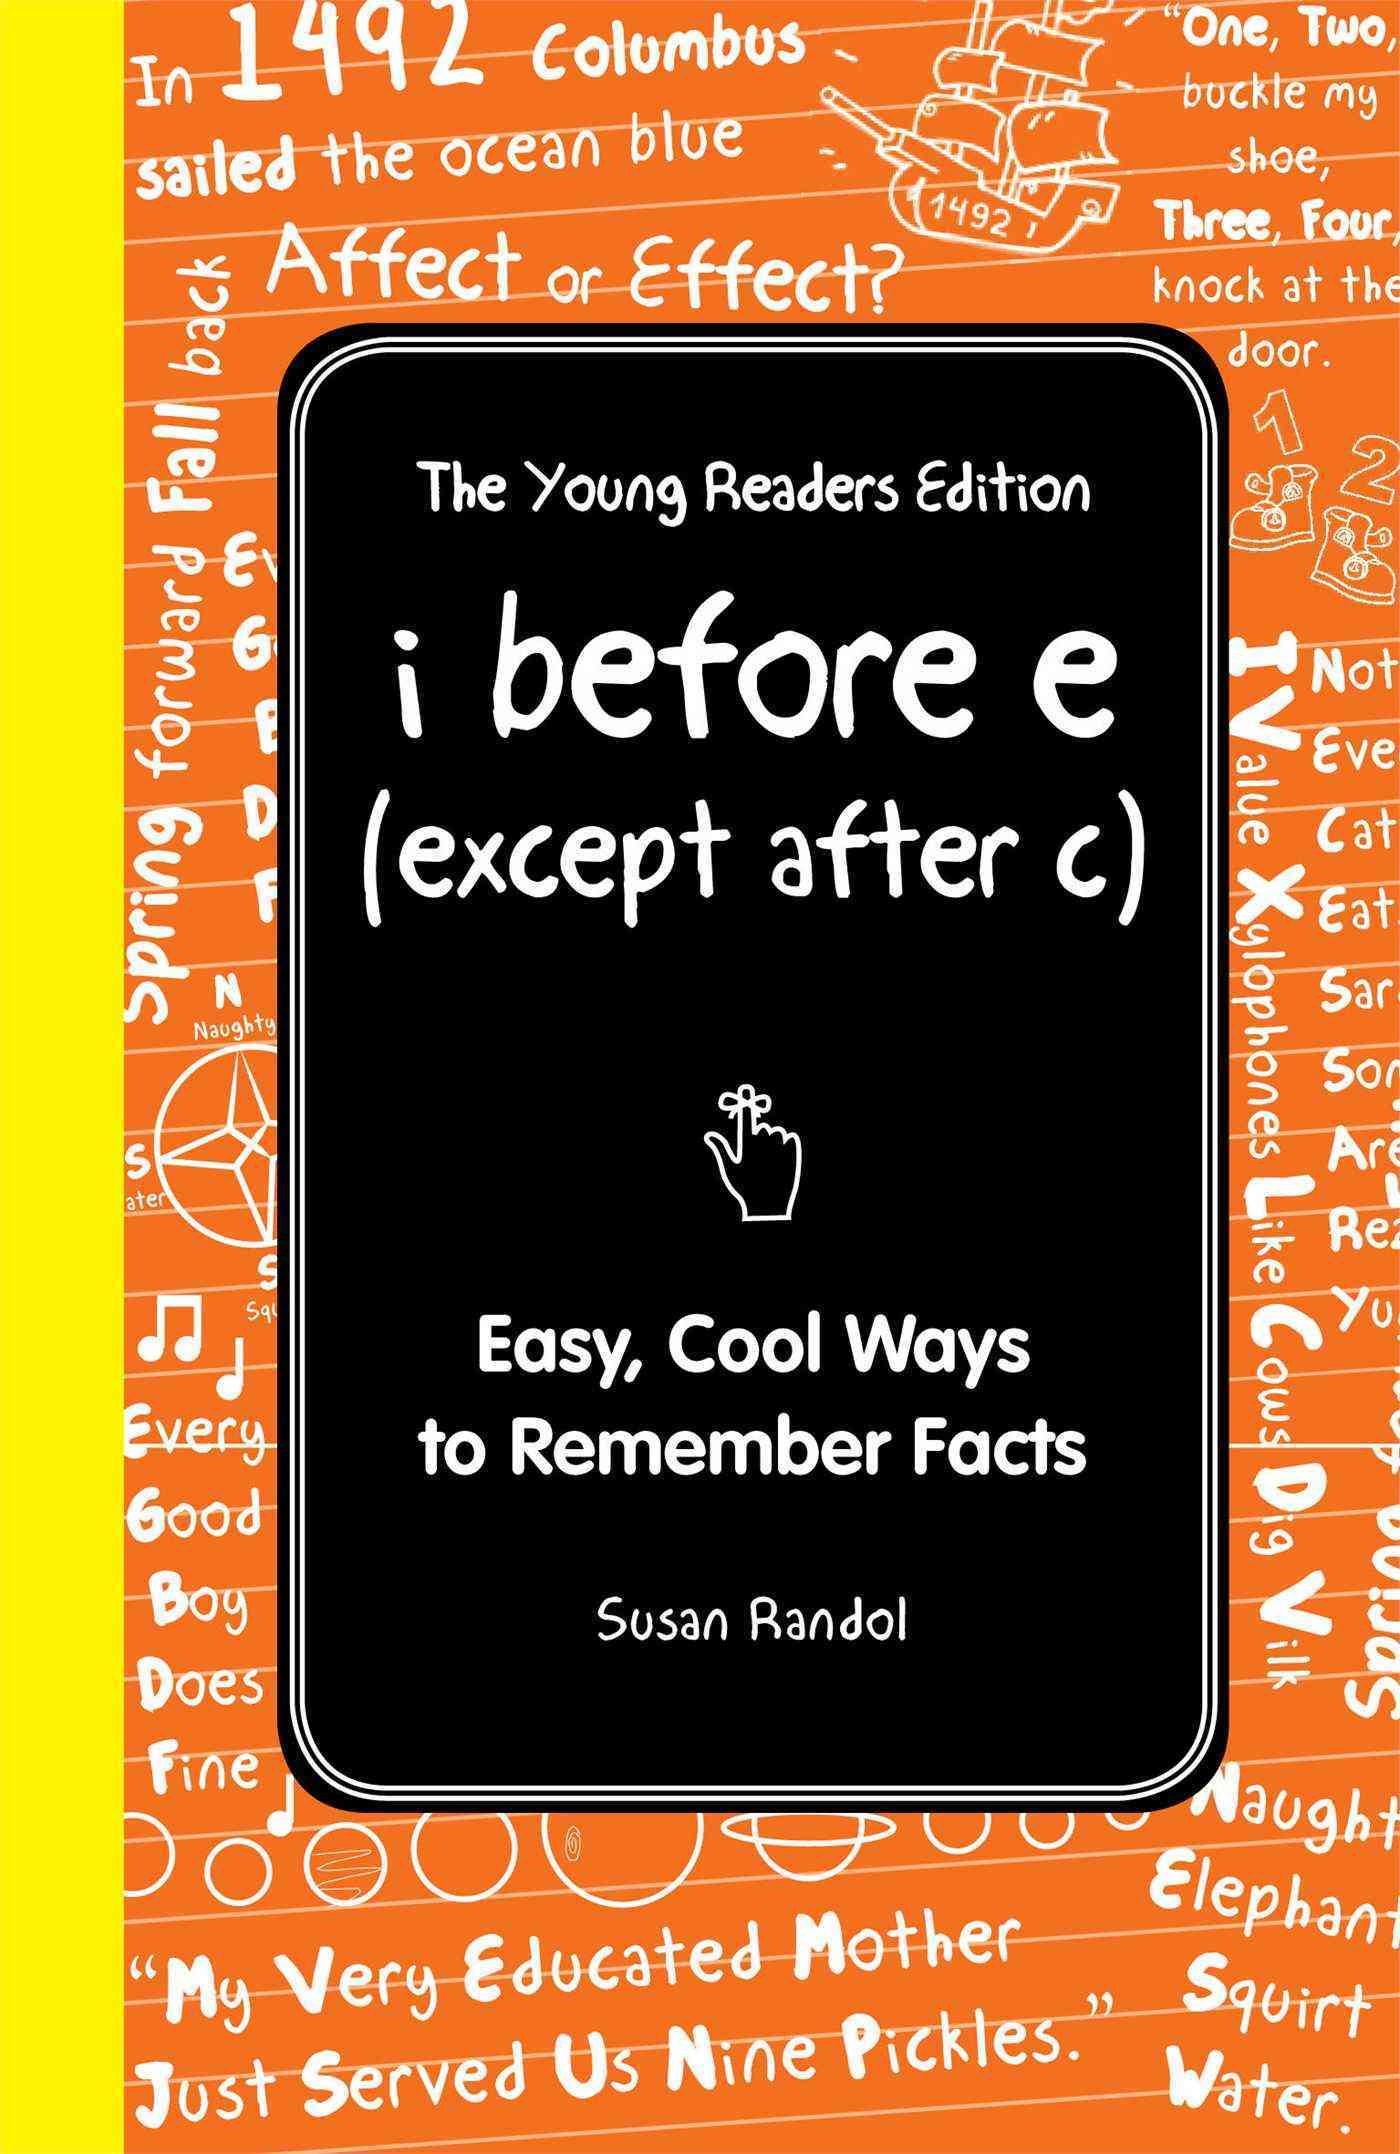 I Before E (Except After C): Cool Ways to Remember Facts (Hardcover)